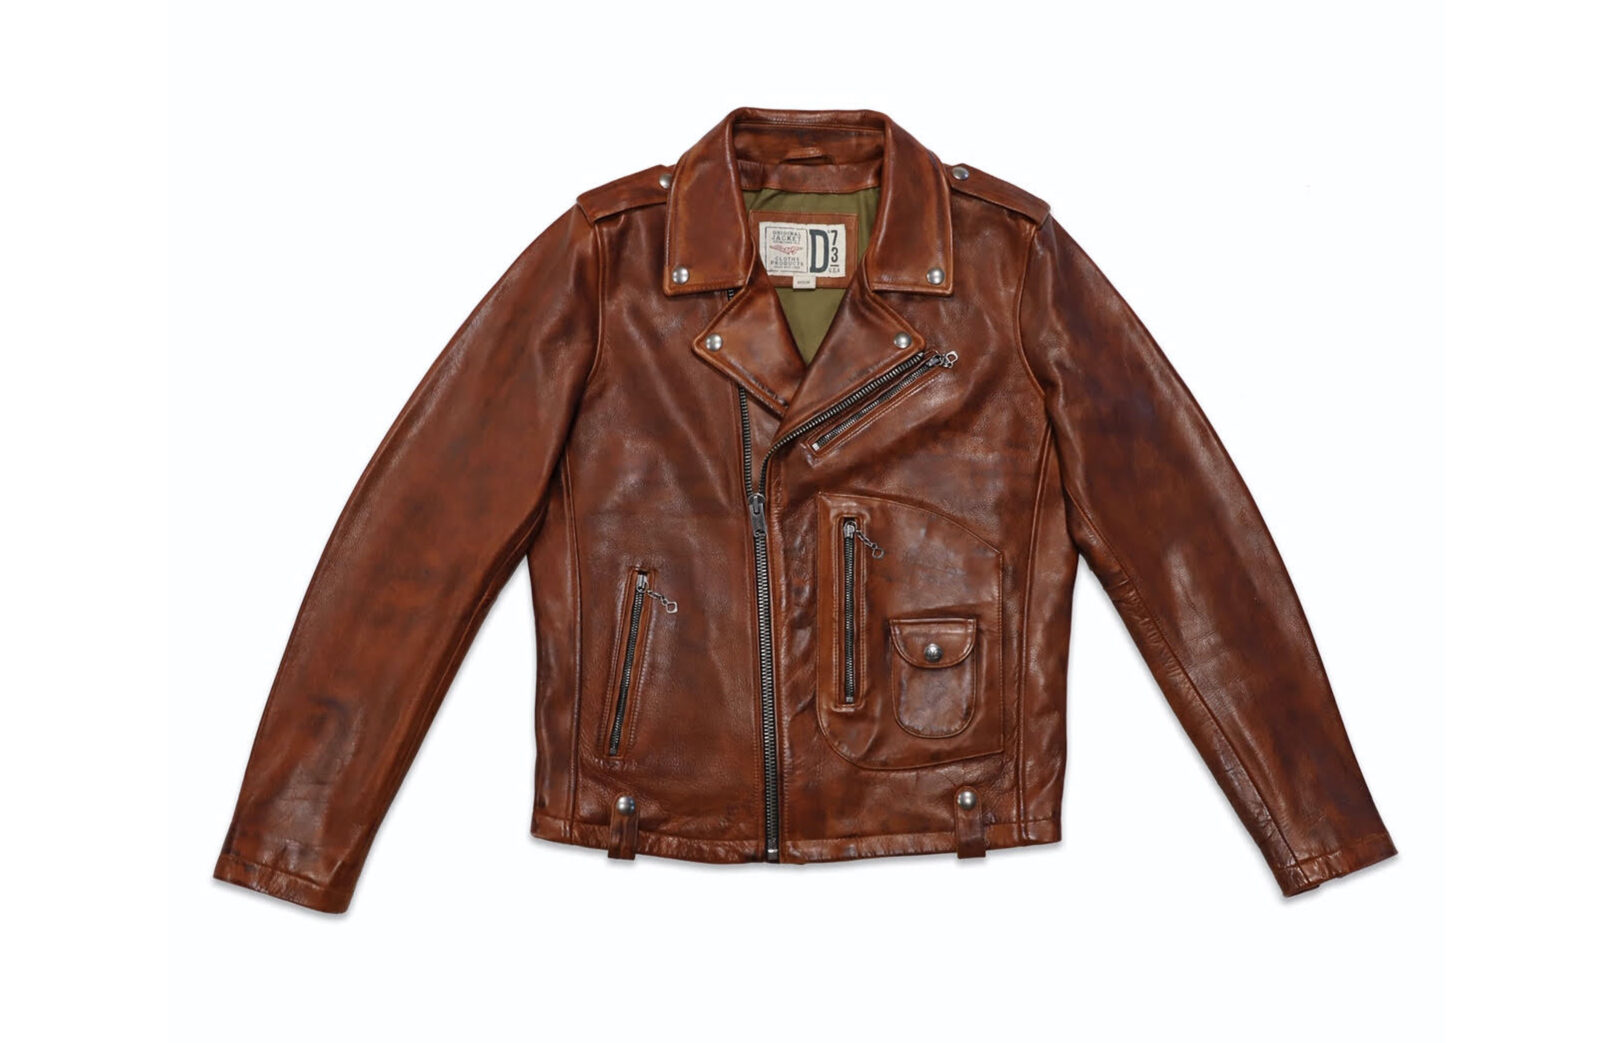 Redford Jacket D73 Leather Company